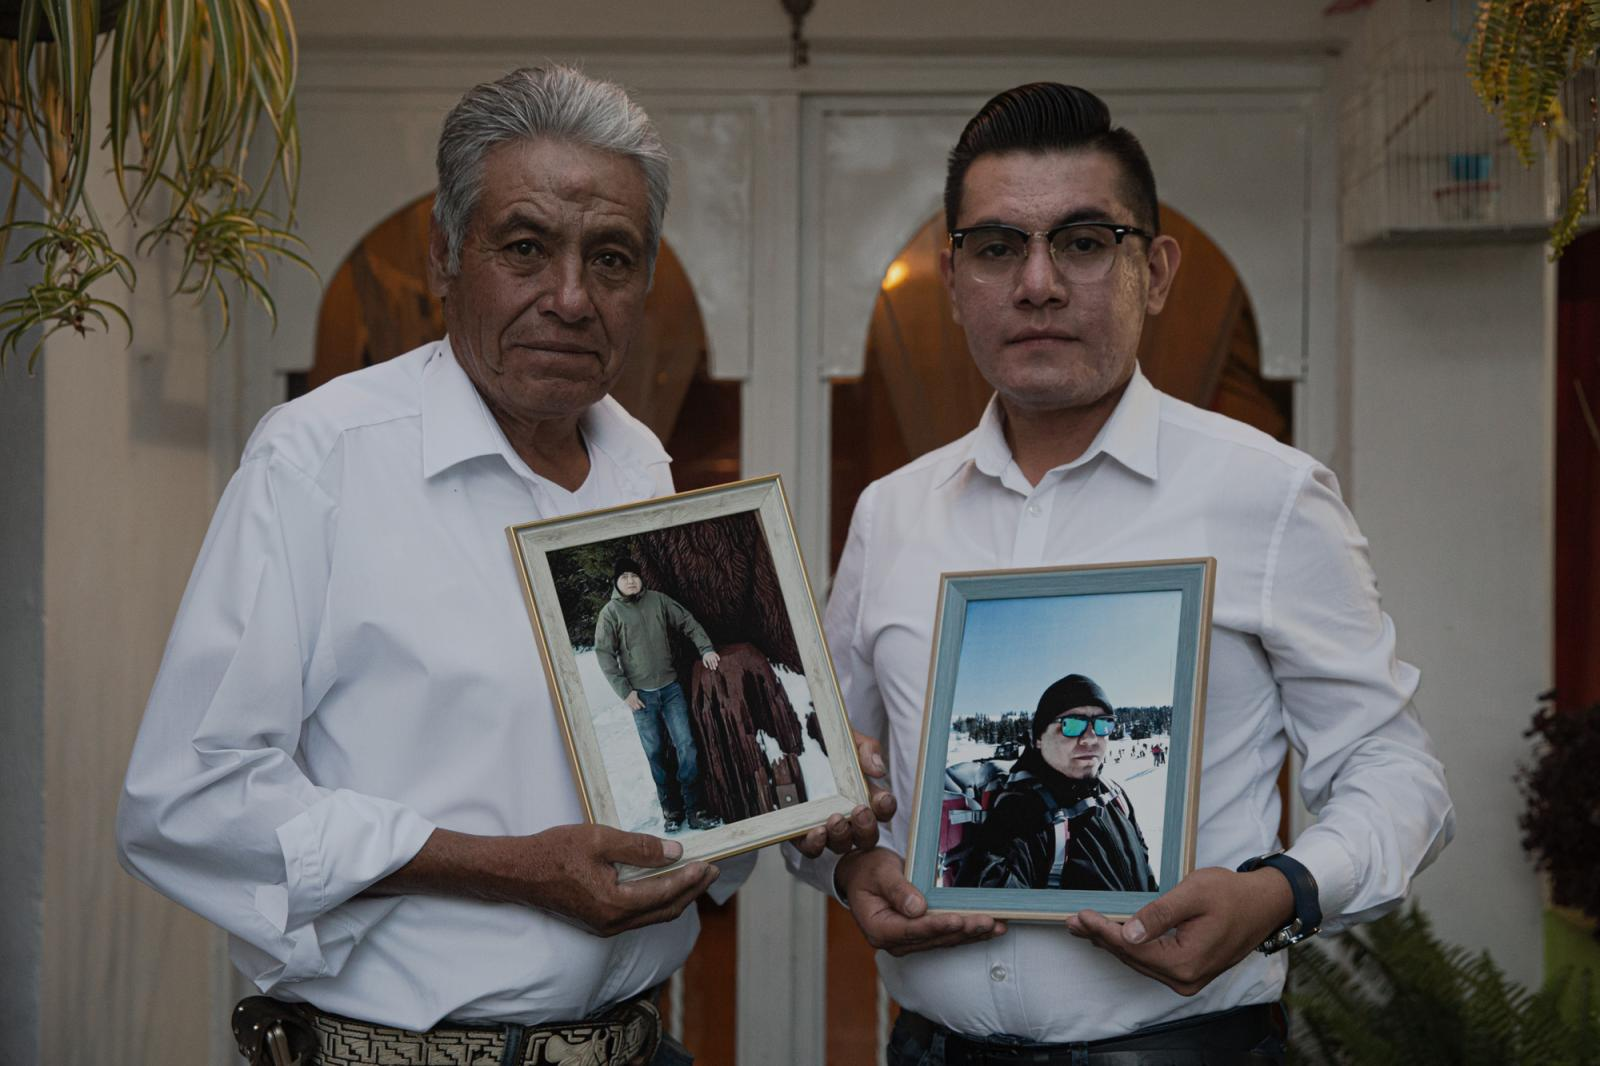 Pedro Martinez Hernandez and Javier Martinez Chichil, hold the photo of Juan Pedro Martinez Chichil, 36 the eldest brother of this family, who died of Covid-19 last April in Stockton, CA. For The Guardian.